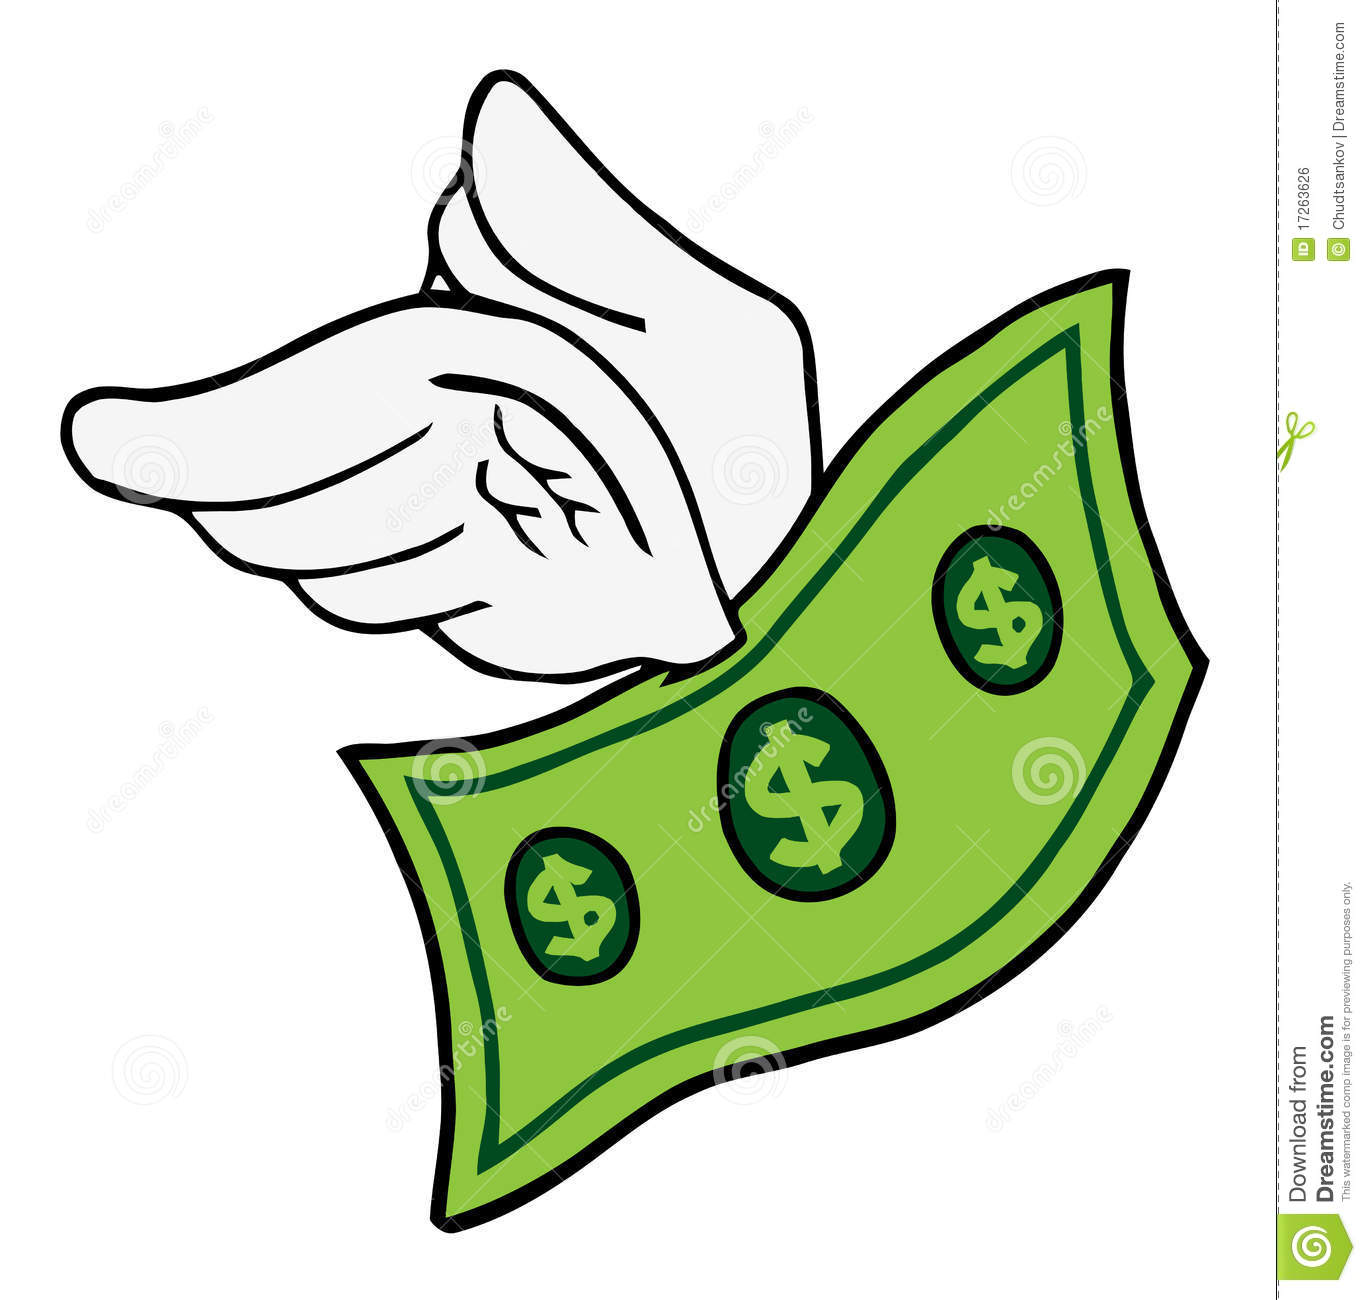 Flying Dollar Royalty Free Stock Image - Image: 17263626